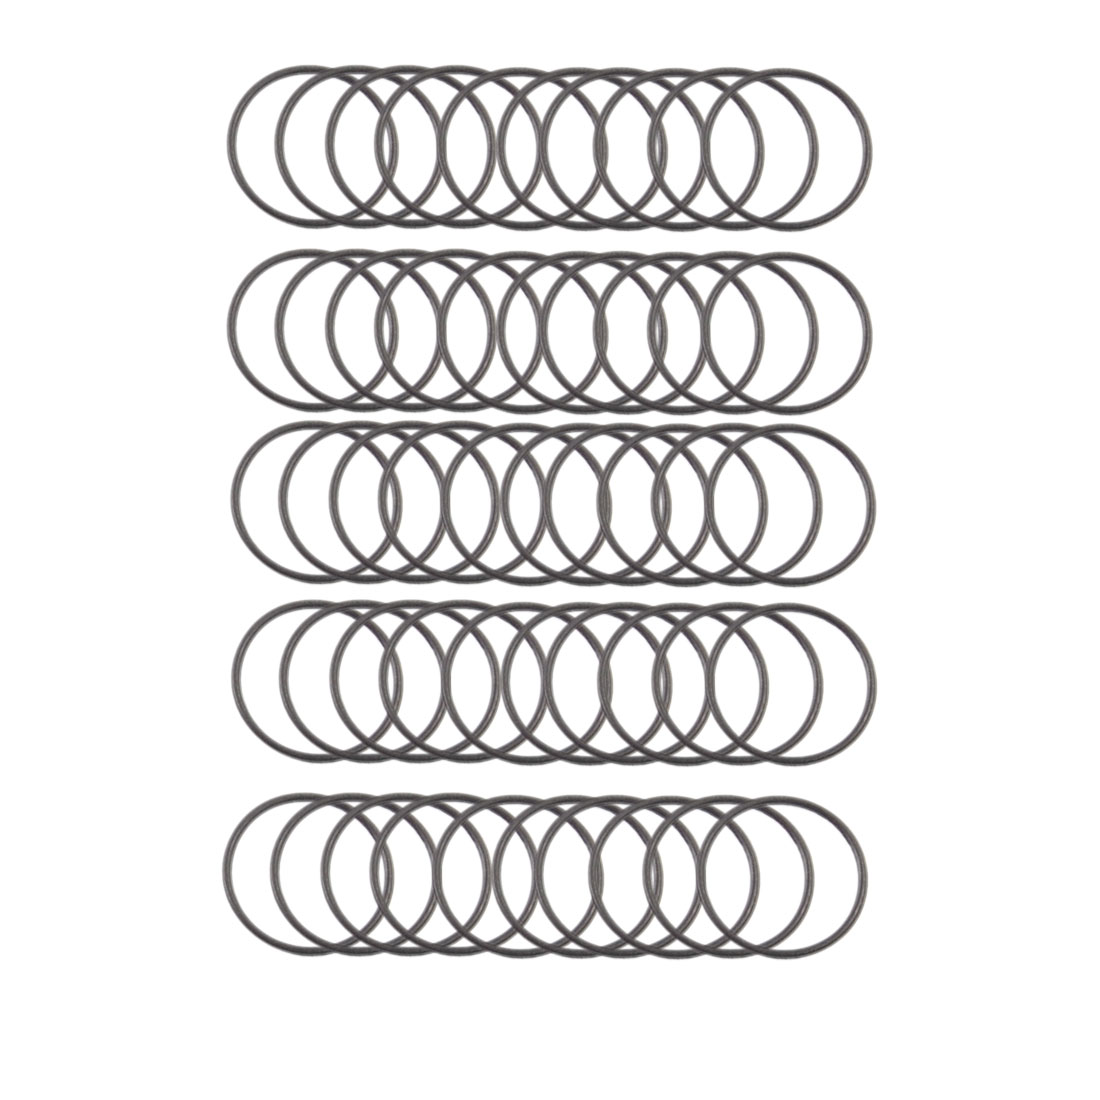 17mmx15mmx1mm Automobile Sealing NBR O Rings Gaskets Washers 50 Pcs